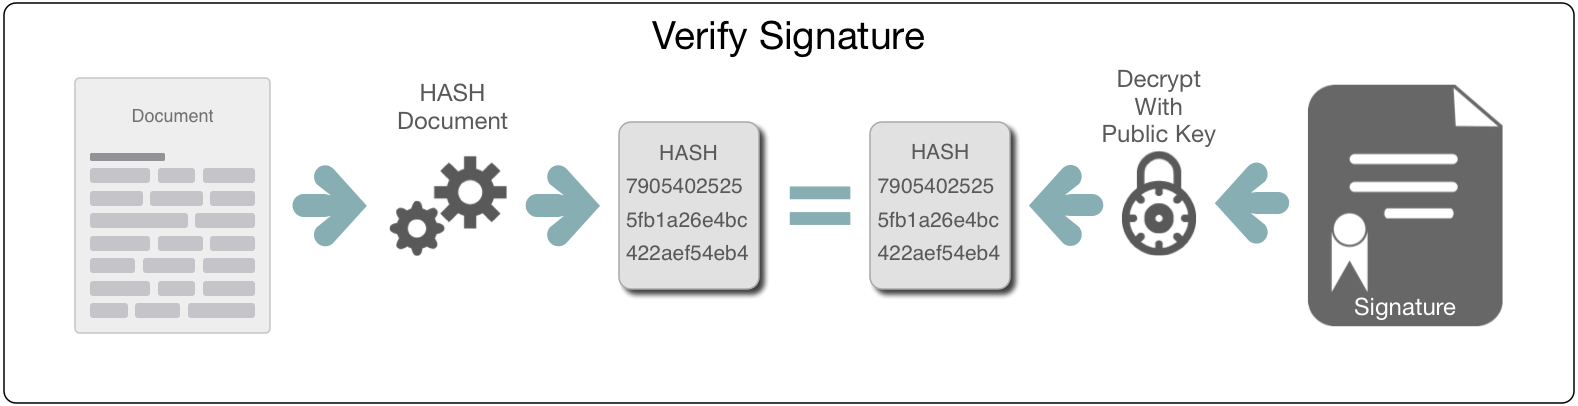 Verifying of a Signature